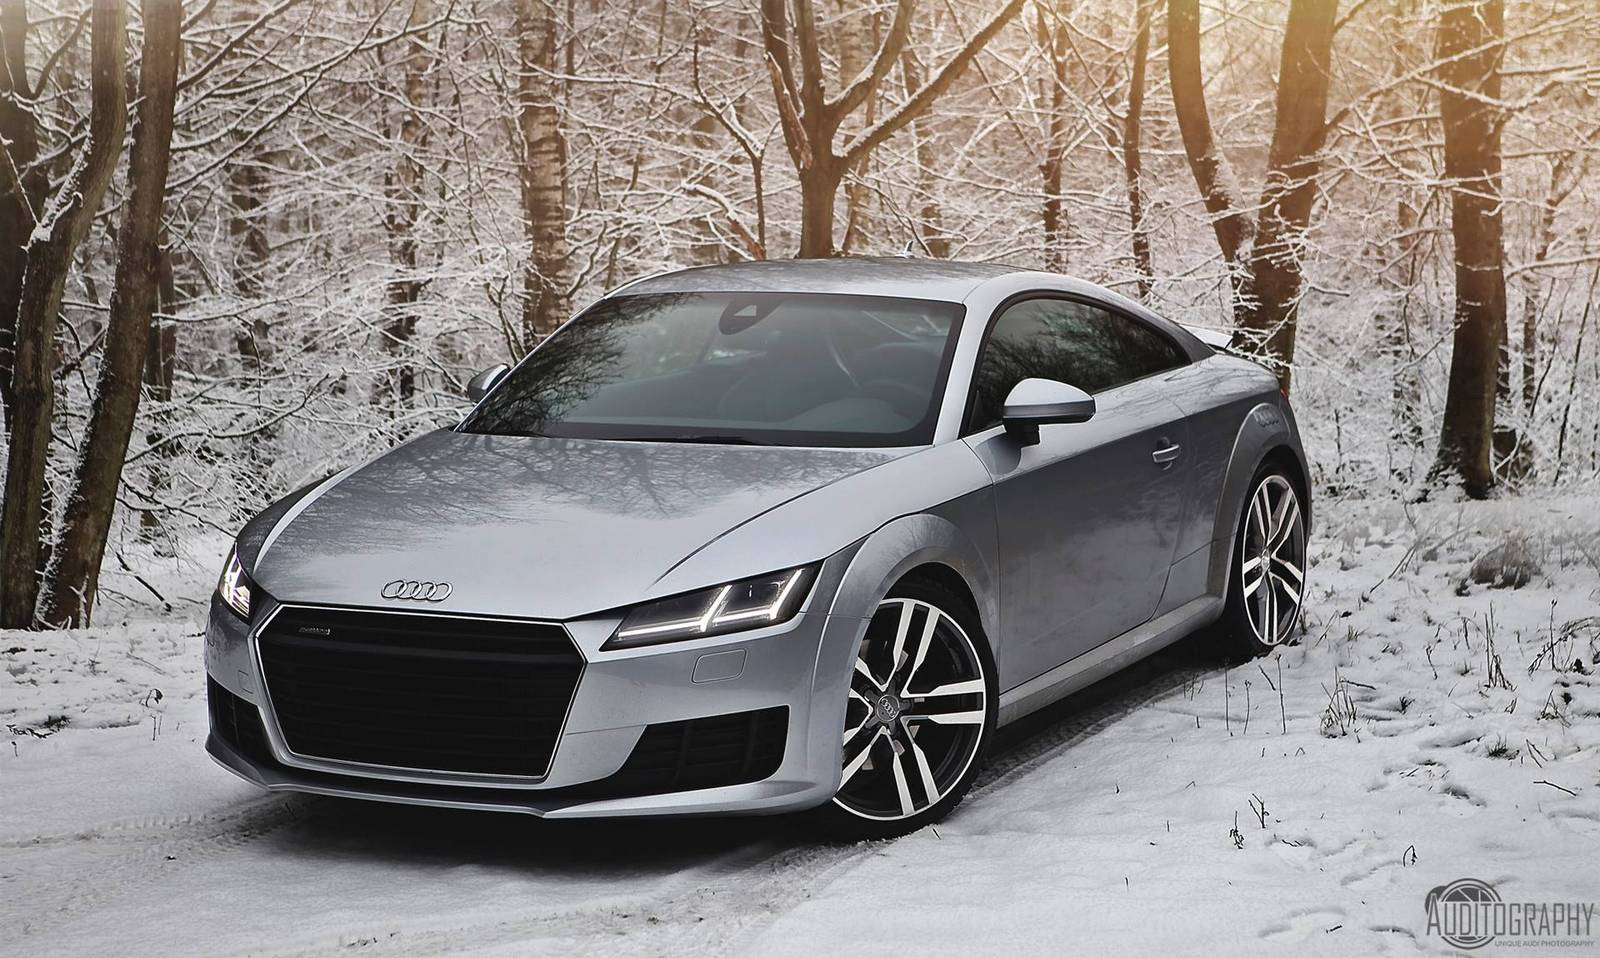 stunning 2015 audi tt photoshoot in swedish winter gtspirit. Black Bedroom Furniture Sets. Home Design Ideas